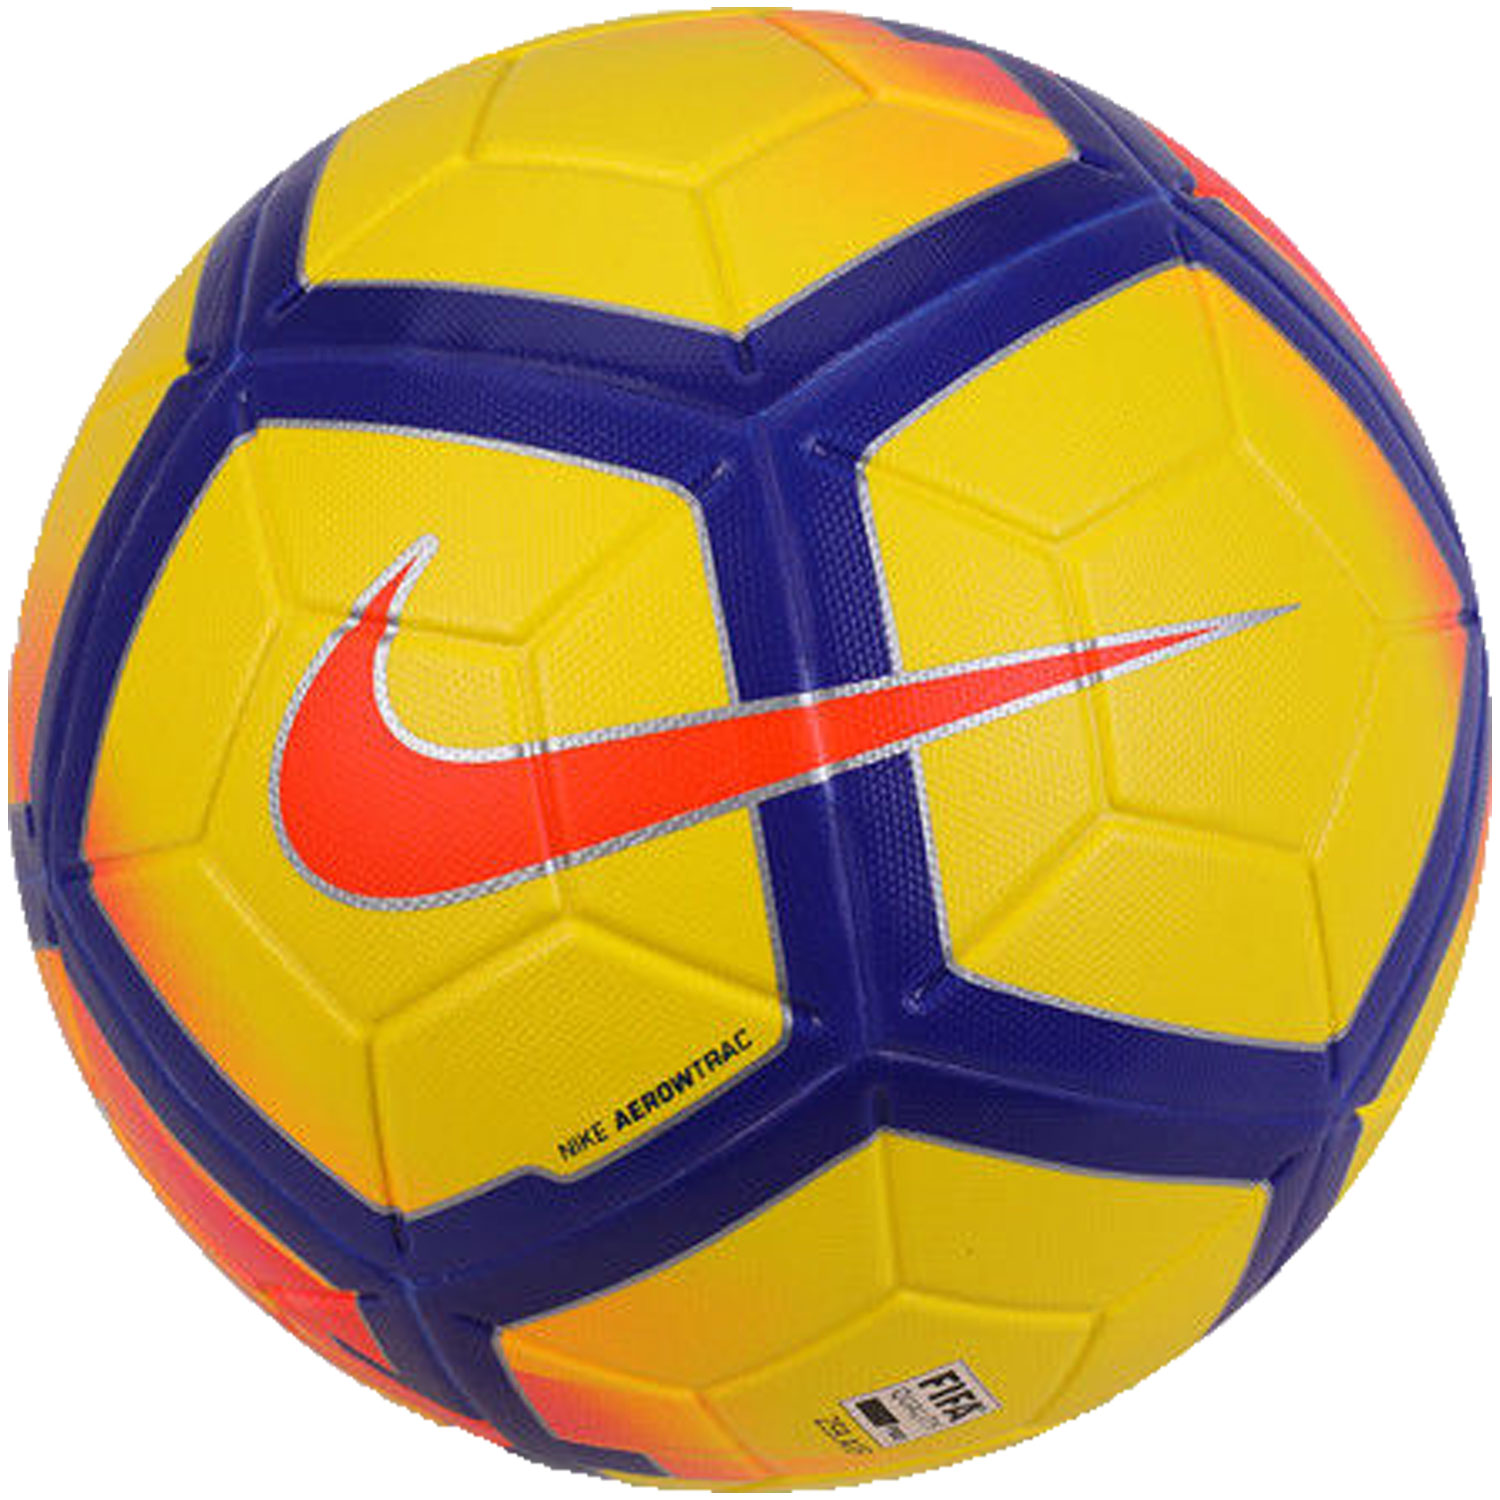 nike magia soccer ball review